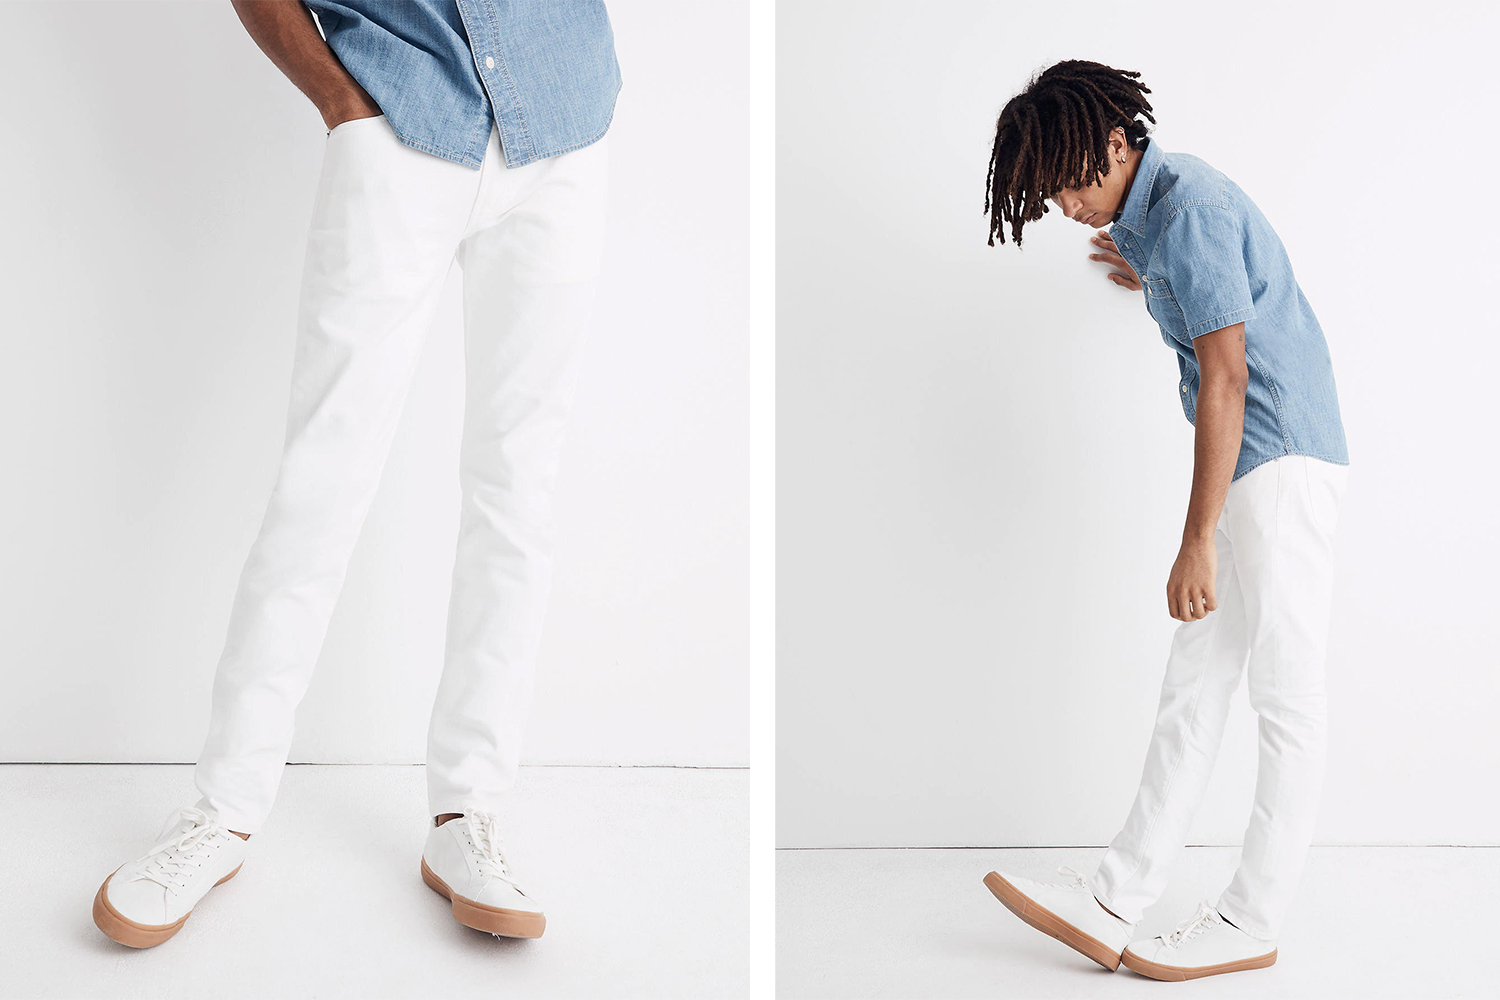 Deal: These $115 Jeans Are Now Just $20